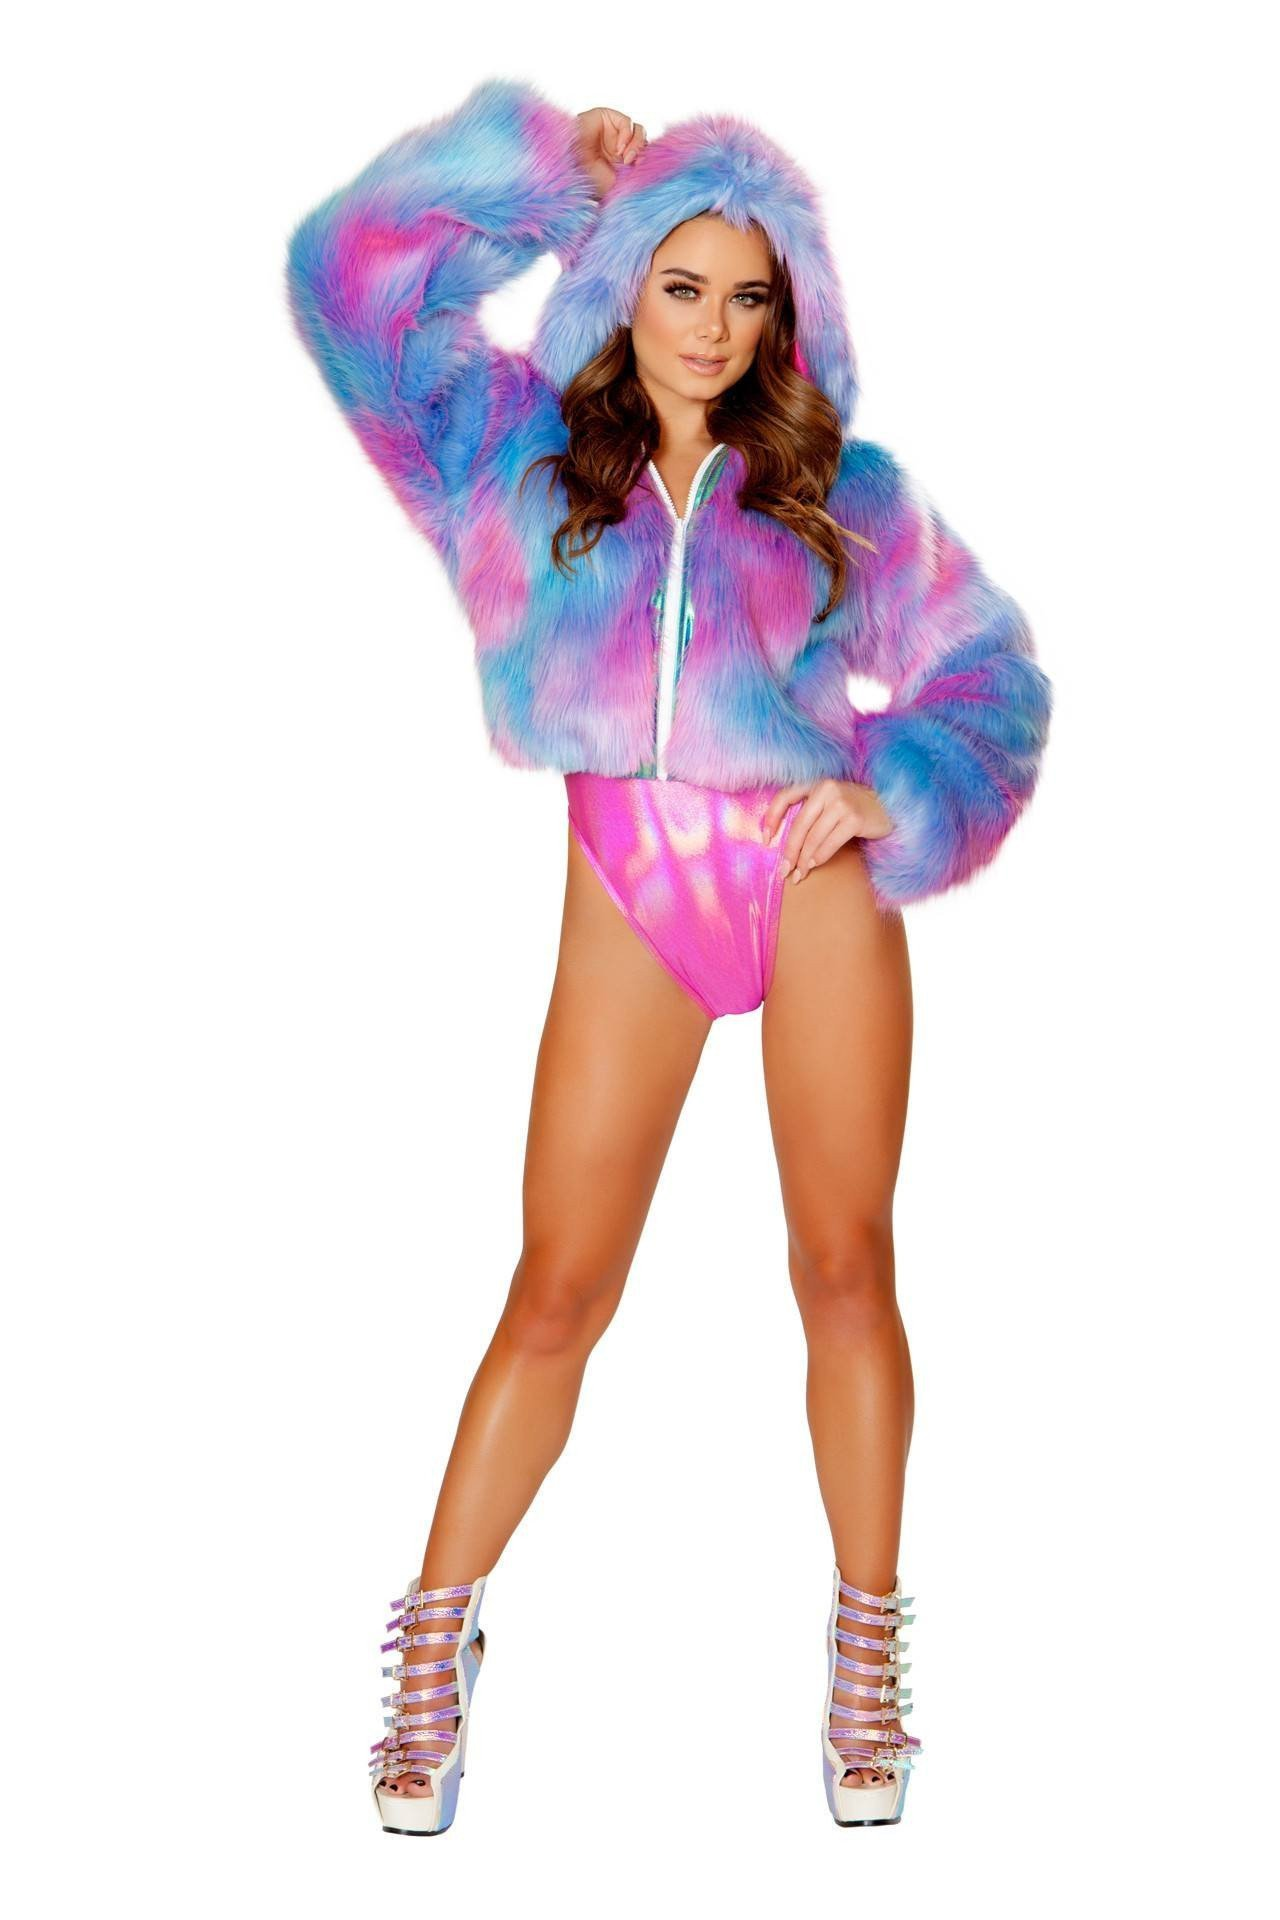 Rave Outfits J. Valentine Kandy Cropped Hooded Jacket With COMPLIMENTARY Shorts